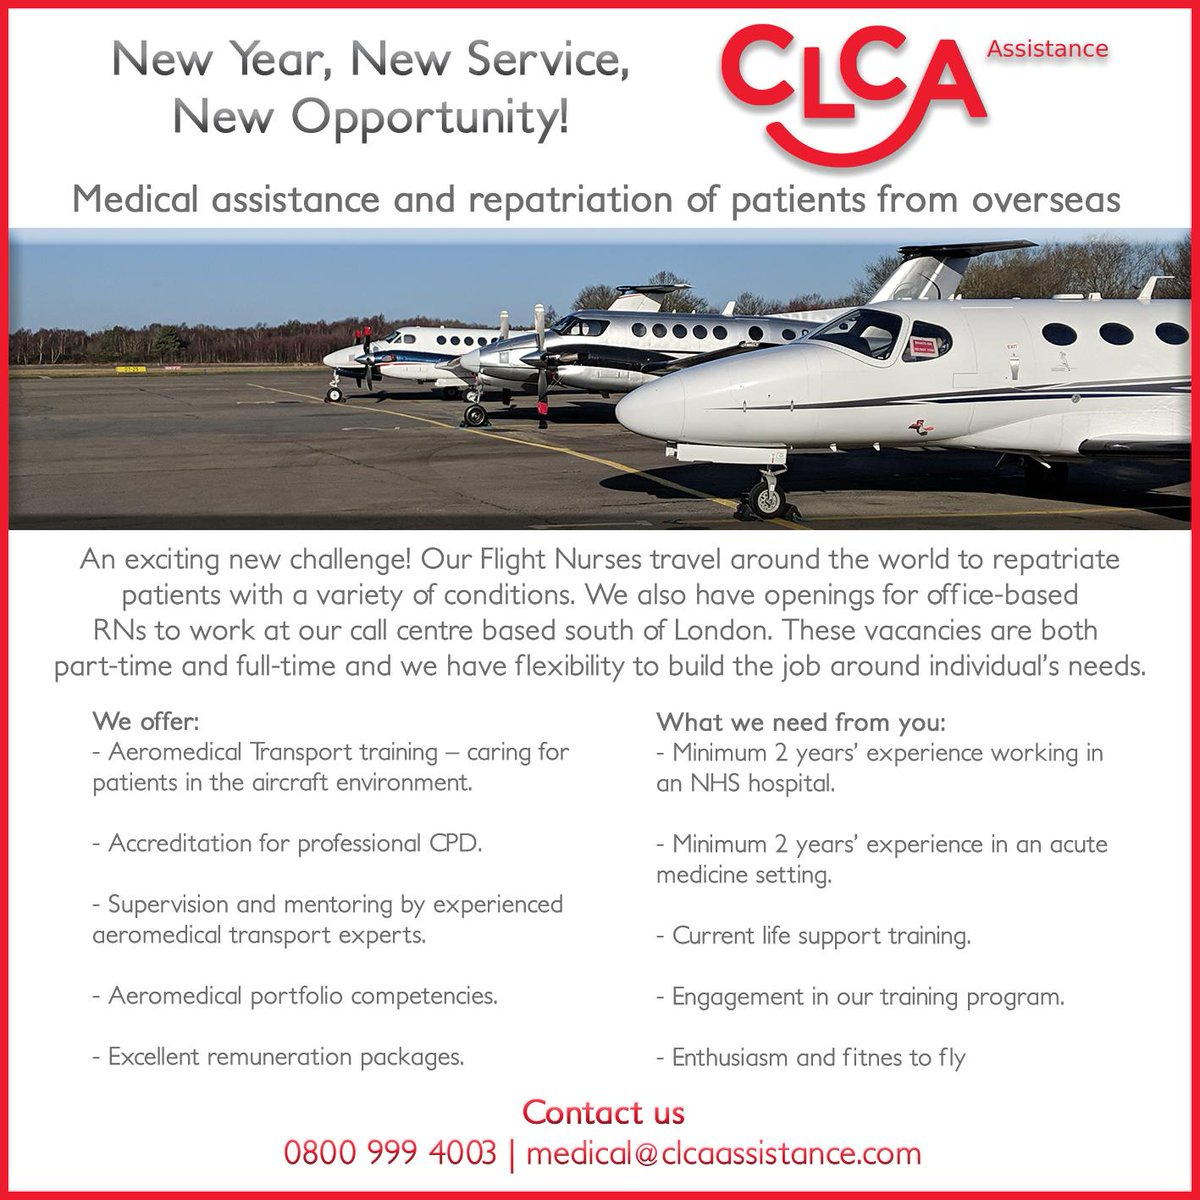 FLIGHT NURSES WANTED - We are recruiting now!  To find out more about the roles, please contact our Aeromedical Services Manager:  +44 (0)800 999 4003 | medical@clcaassistance.com  #aviation #FlightNurse #recruitment #Recruiting